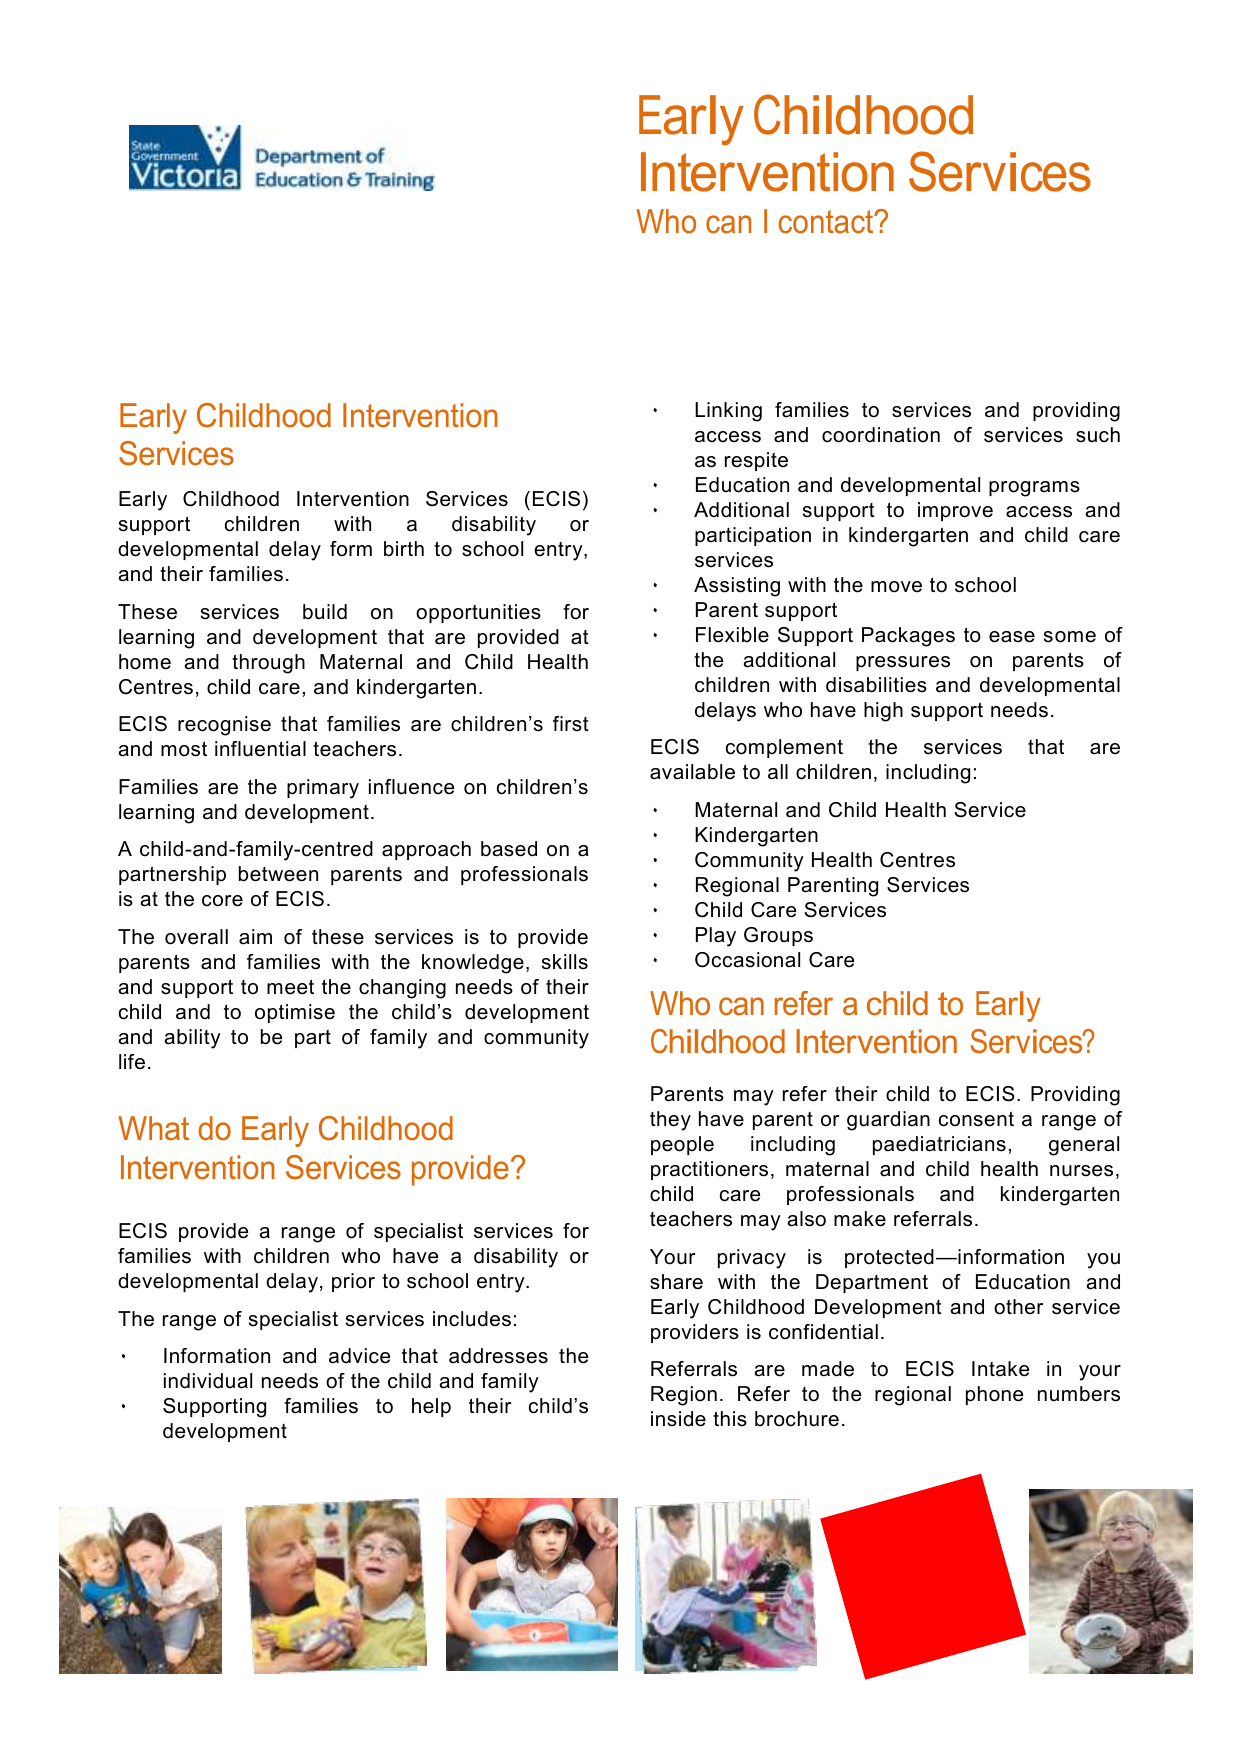 Early Childhood Intervention Services Fact Sheet Docx